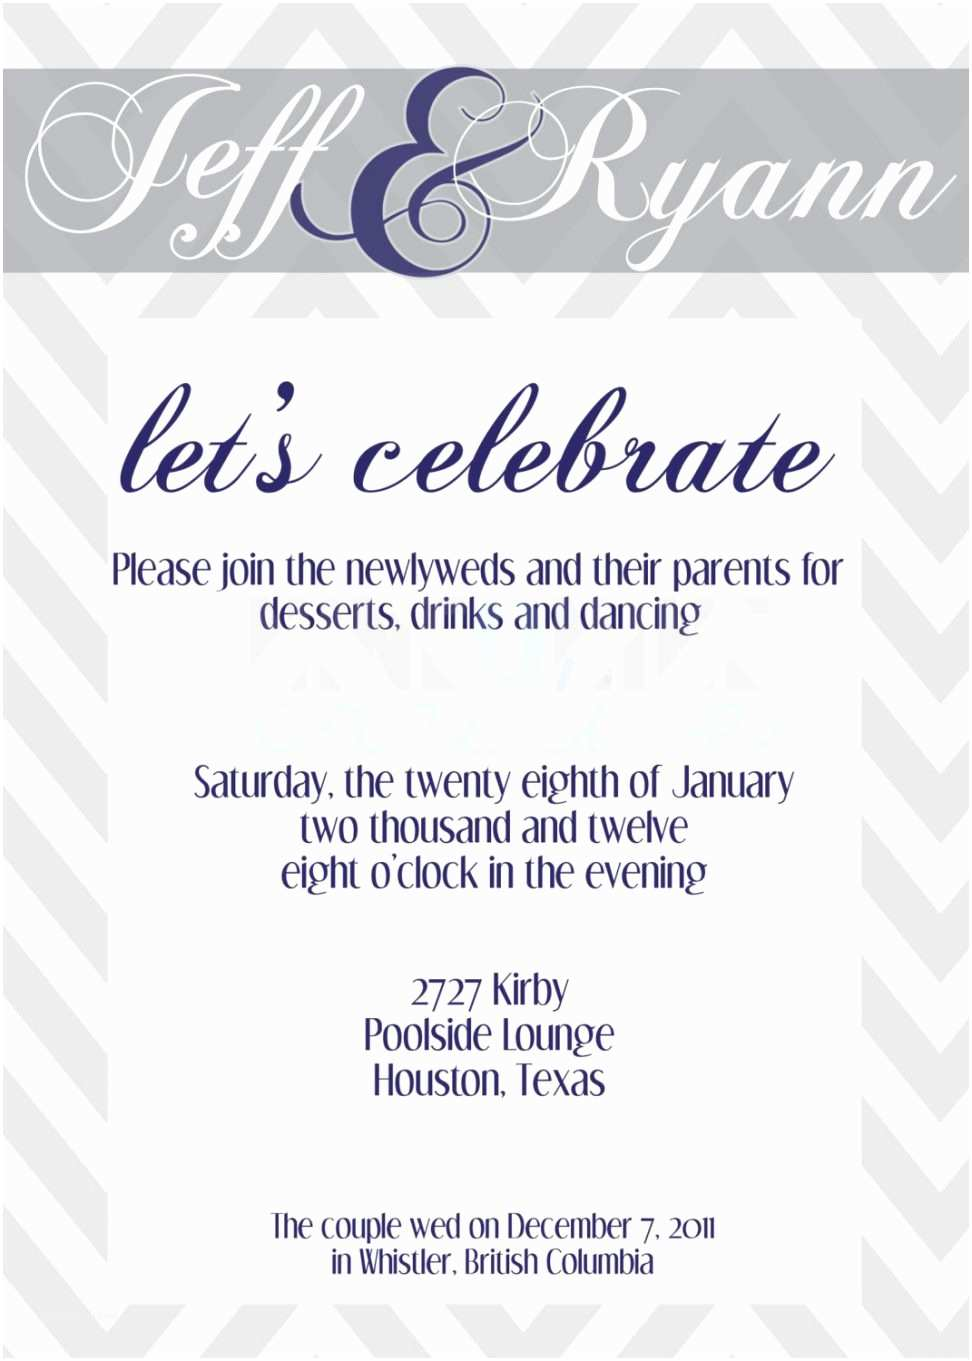 Wedding Celebration Invitations Wedding Invitation Templates Wedding Party Invitations